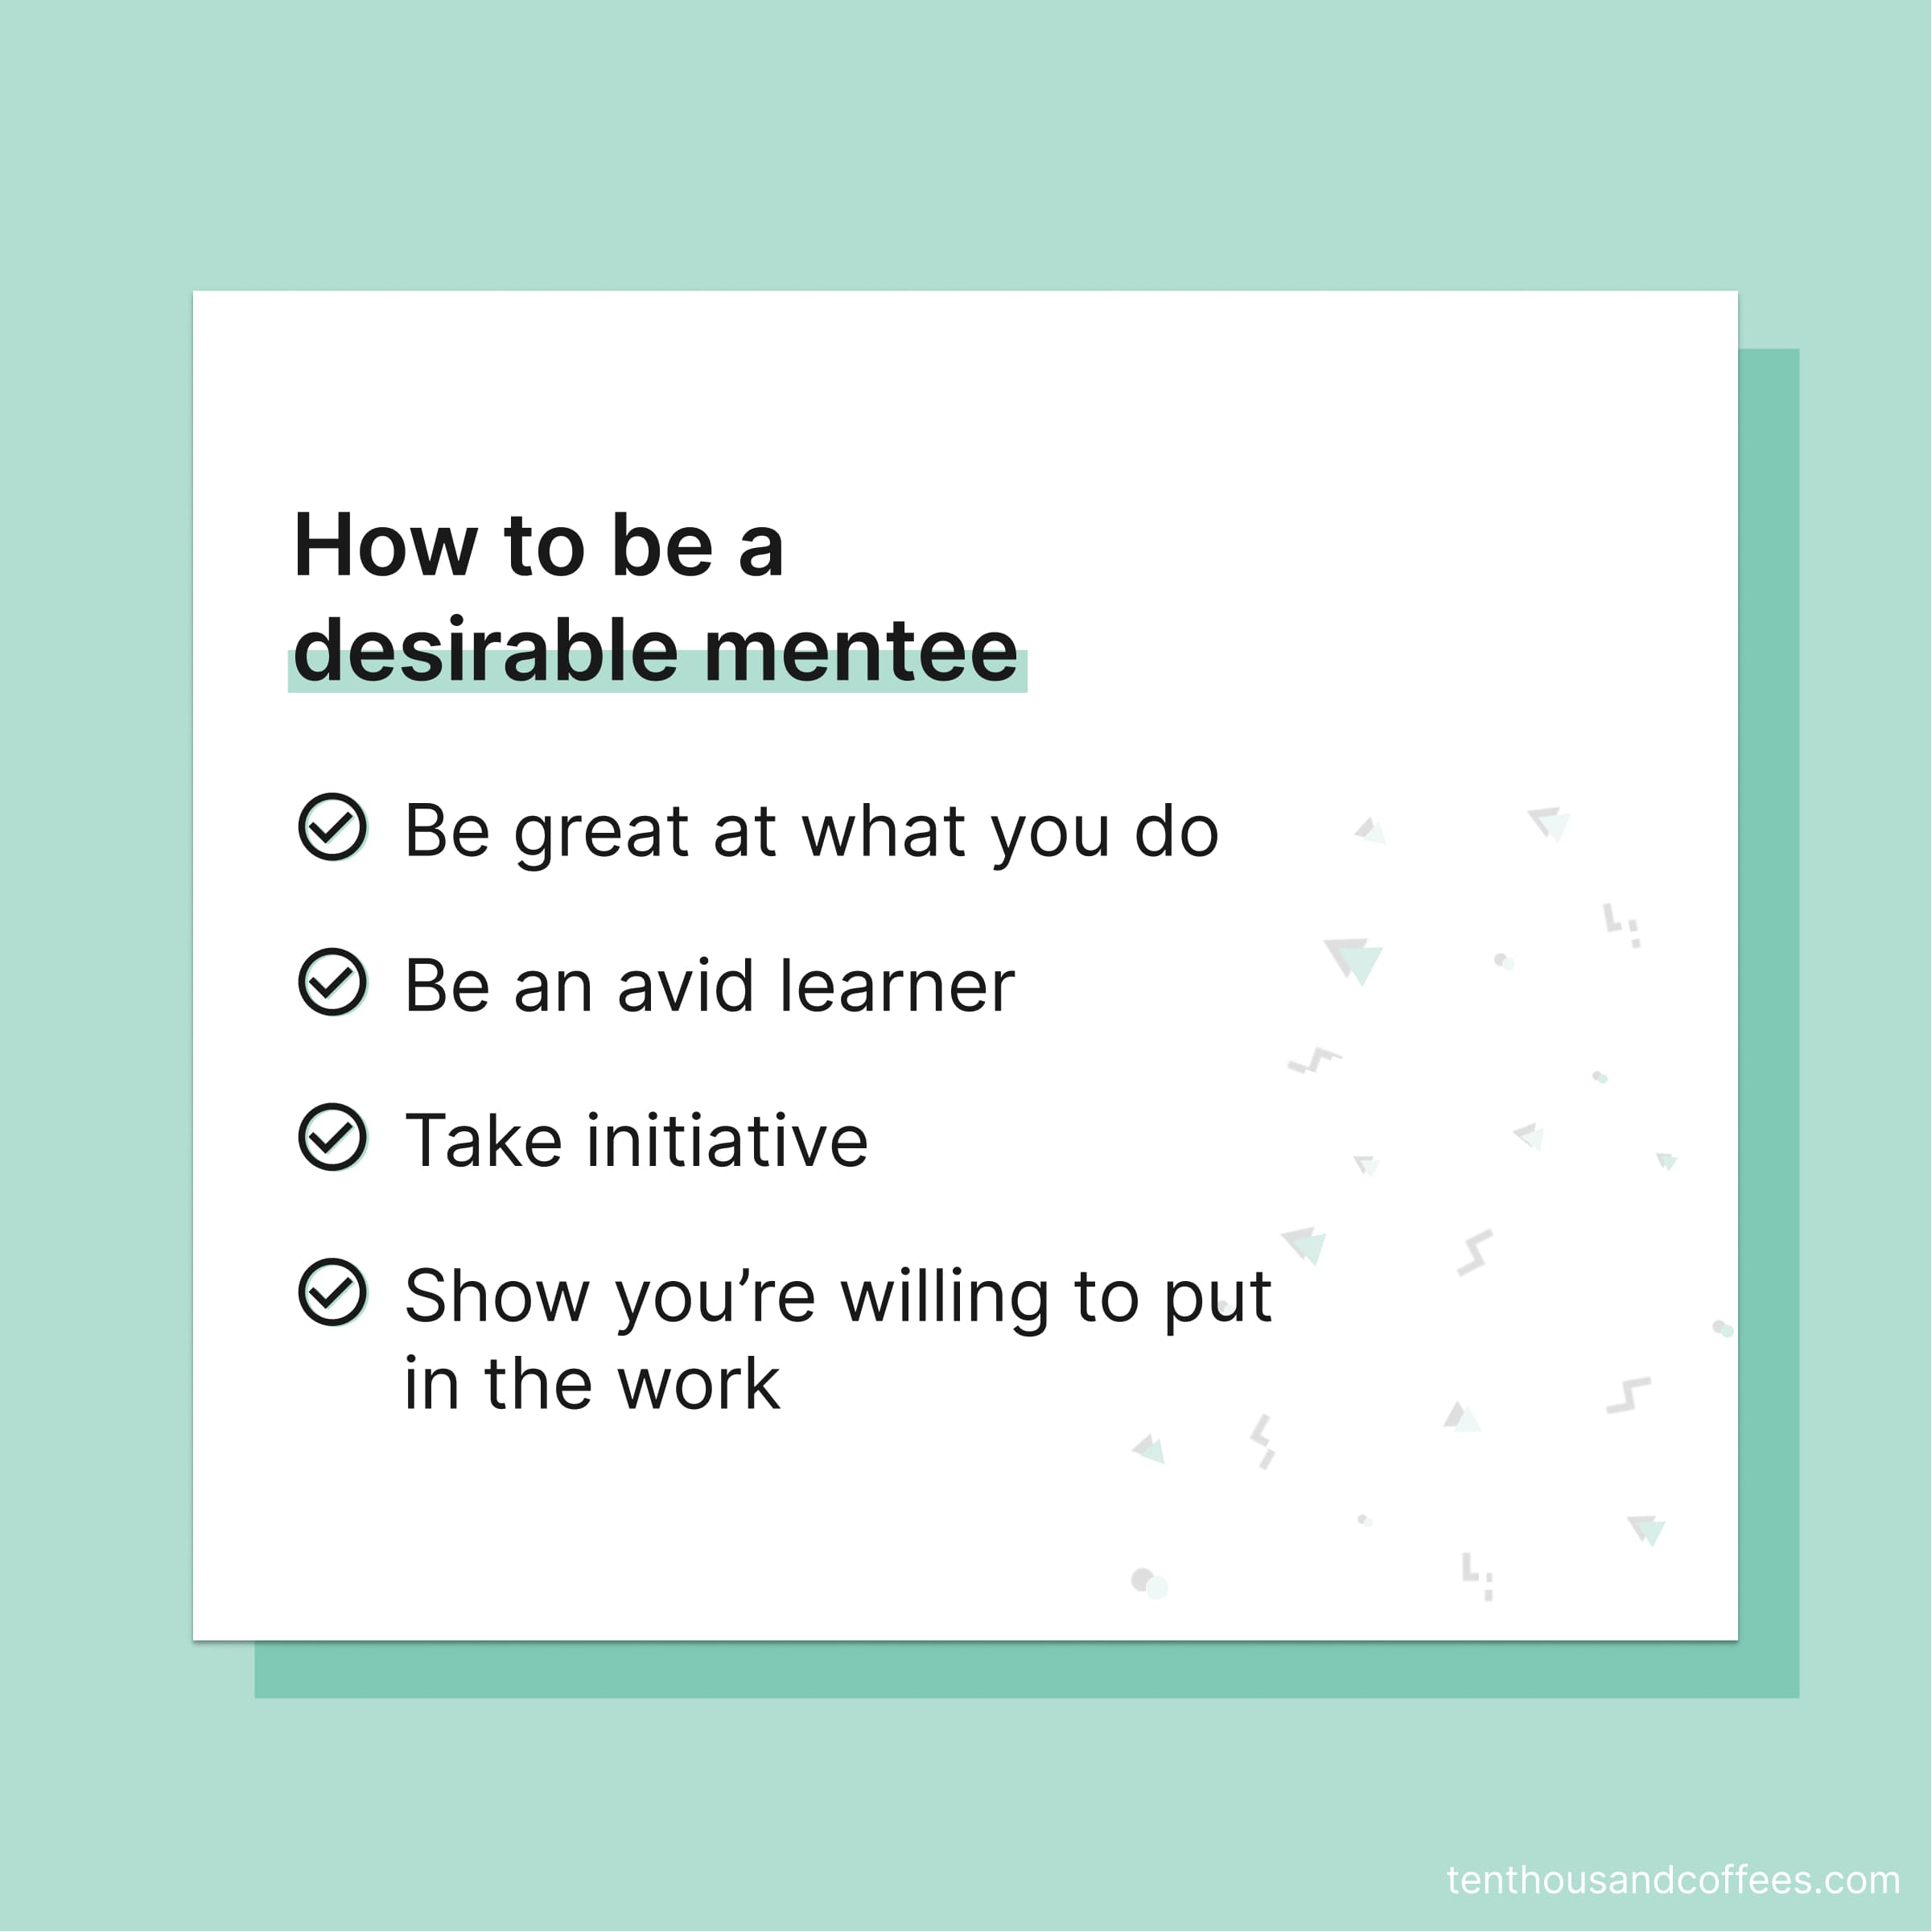 How to be a desirable mentee